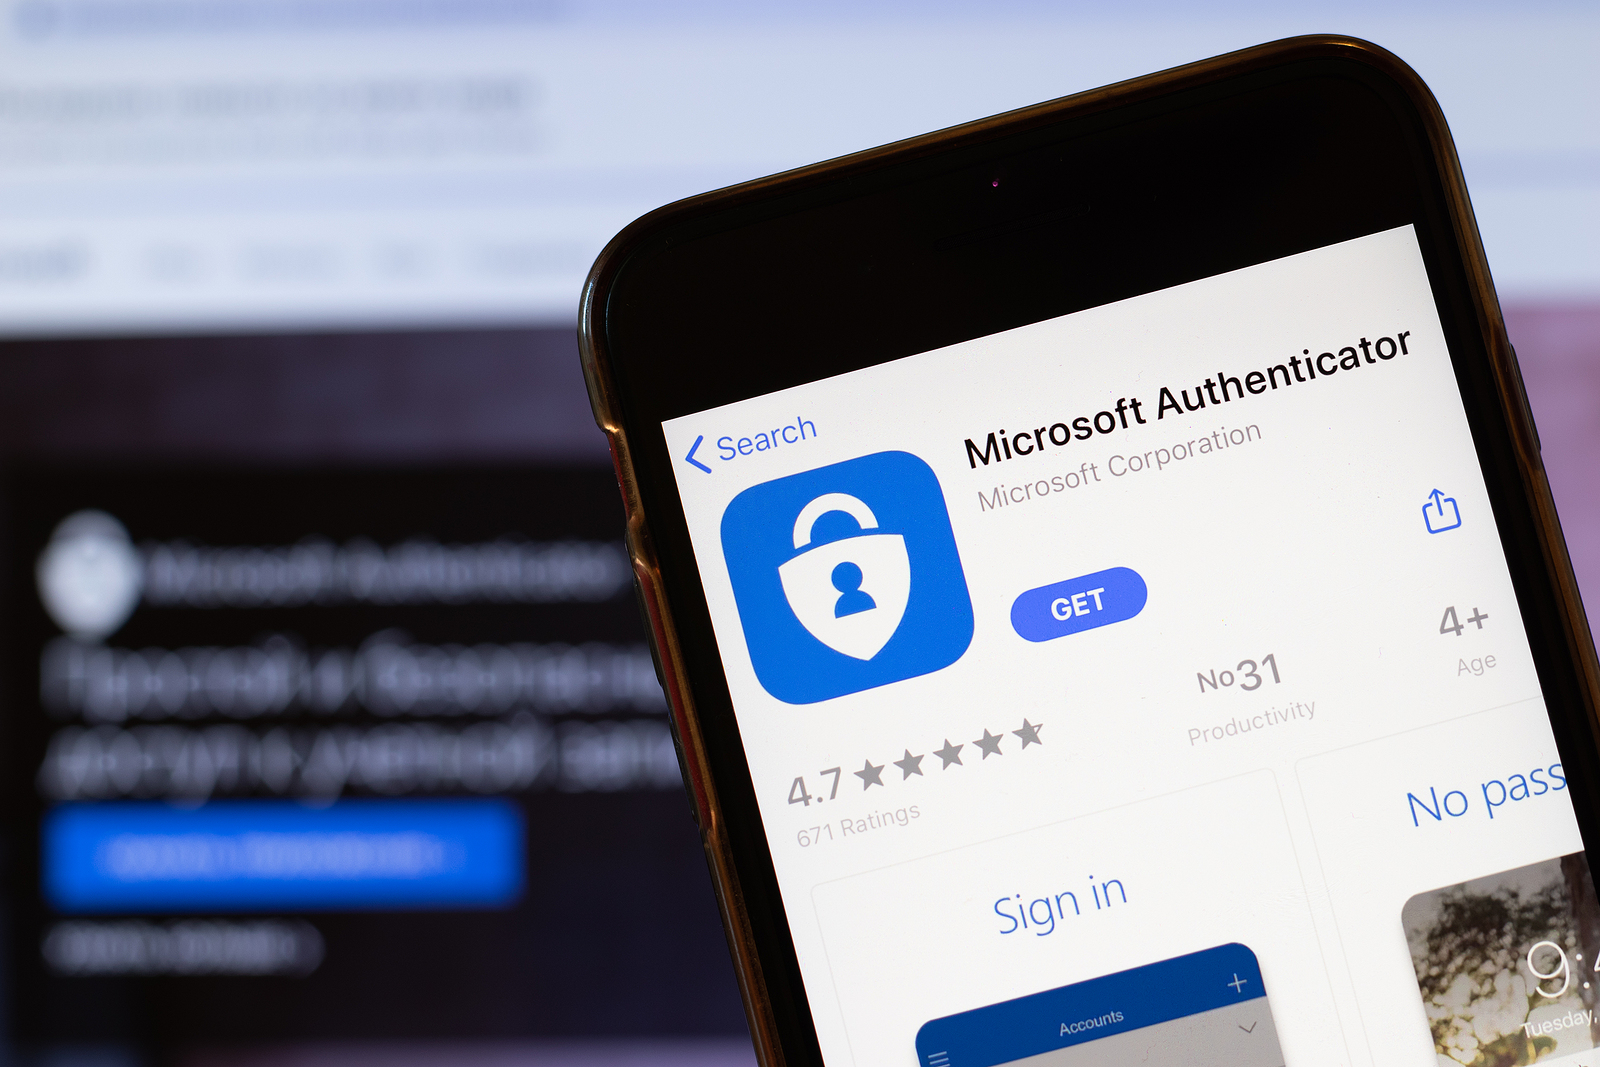 How to Install the Microsoft Authenticator App on Your Phone